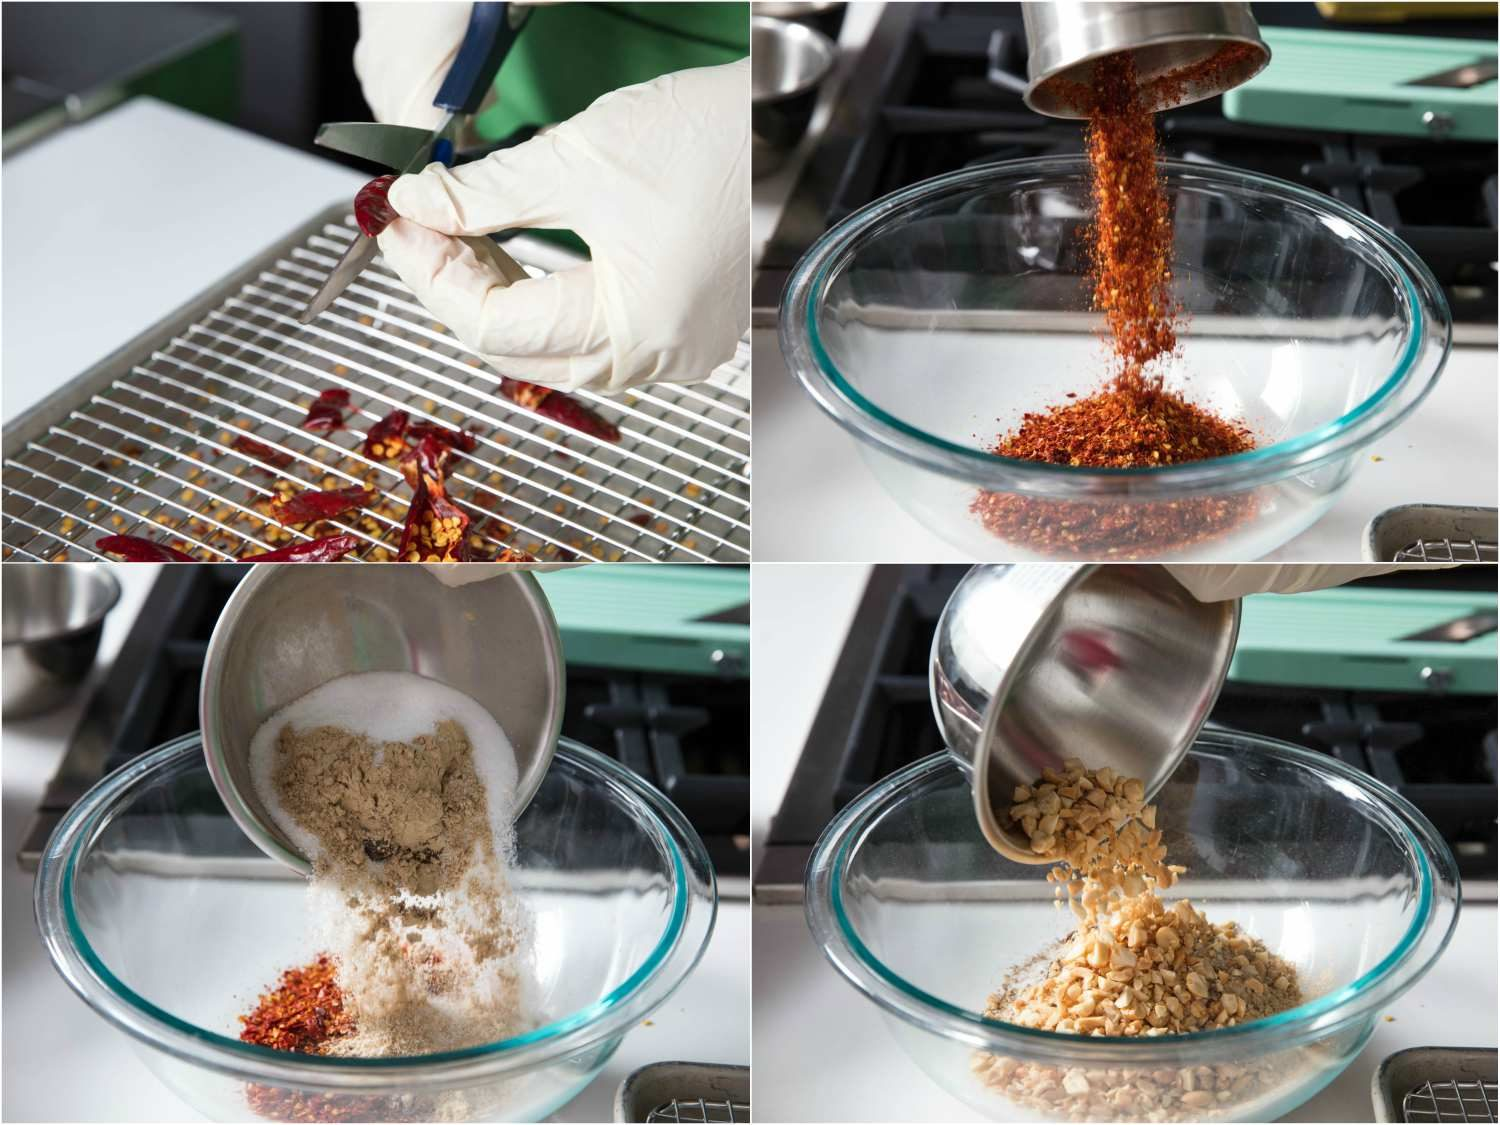 Dried chili peppers being de-seeded, dried chilies ground into flakes, spices added to dried chilies, peanuts added to dried chilies